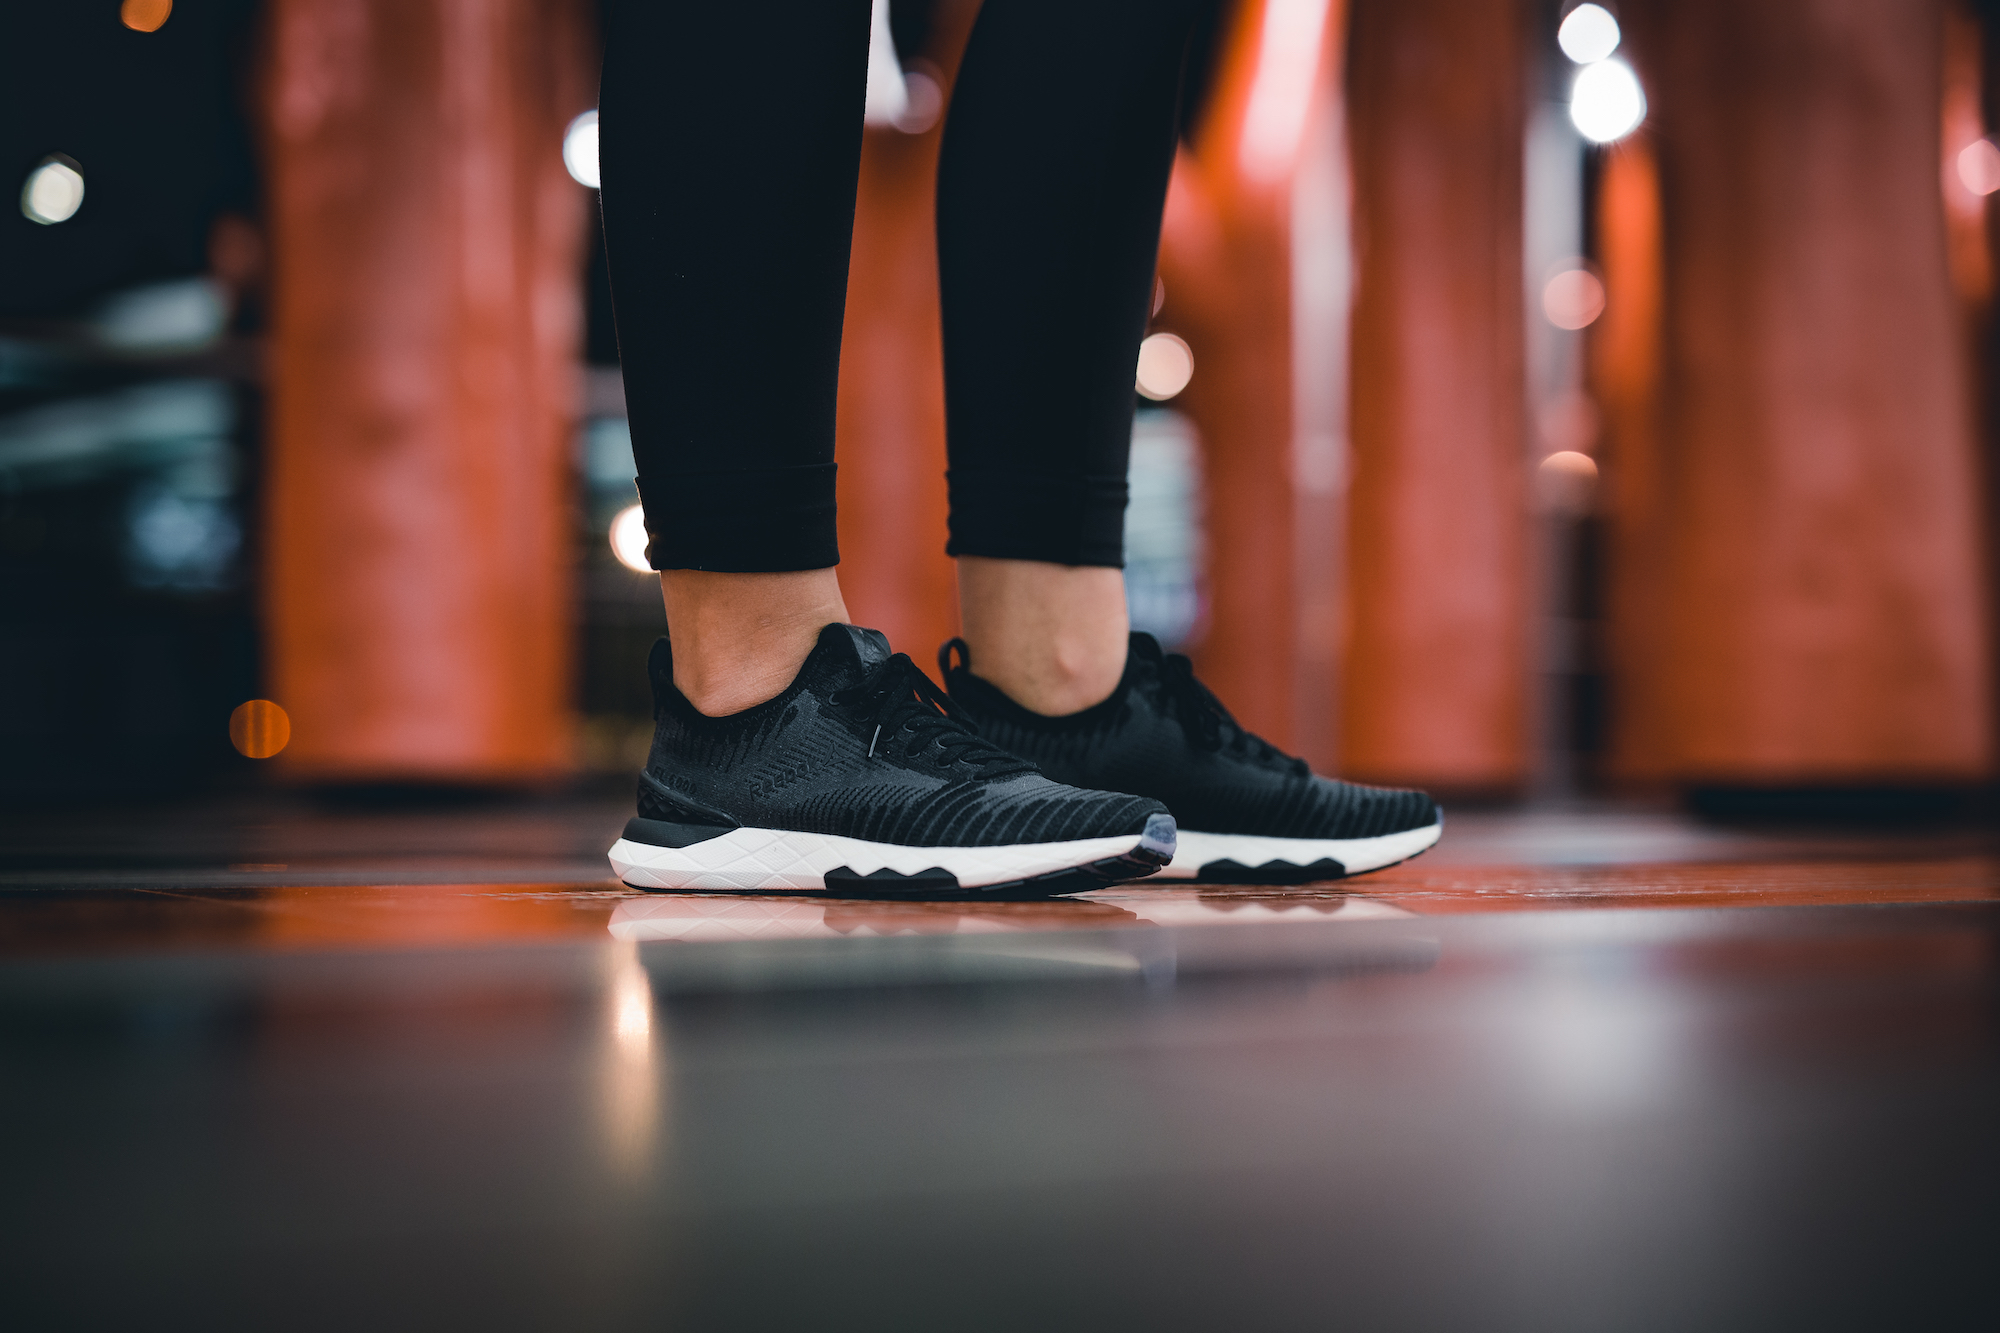 The Reebok Floatride 6000 is a Modern Update to the Classic